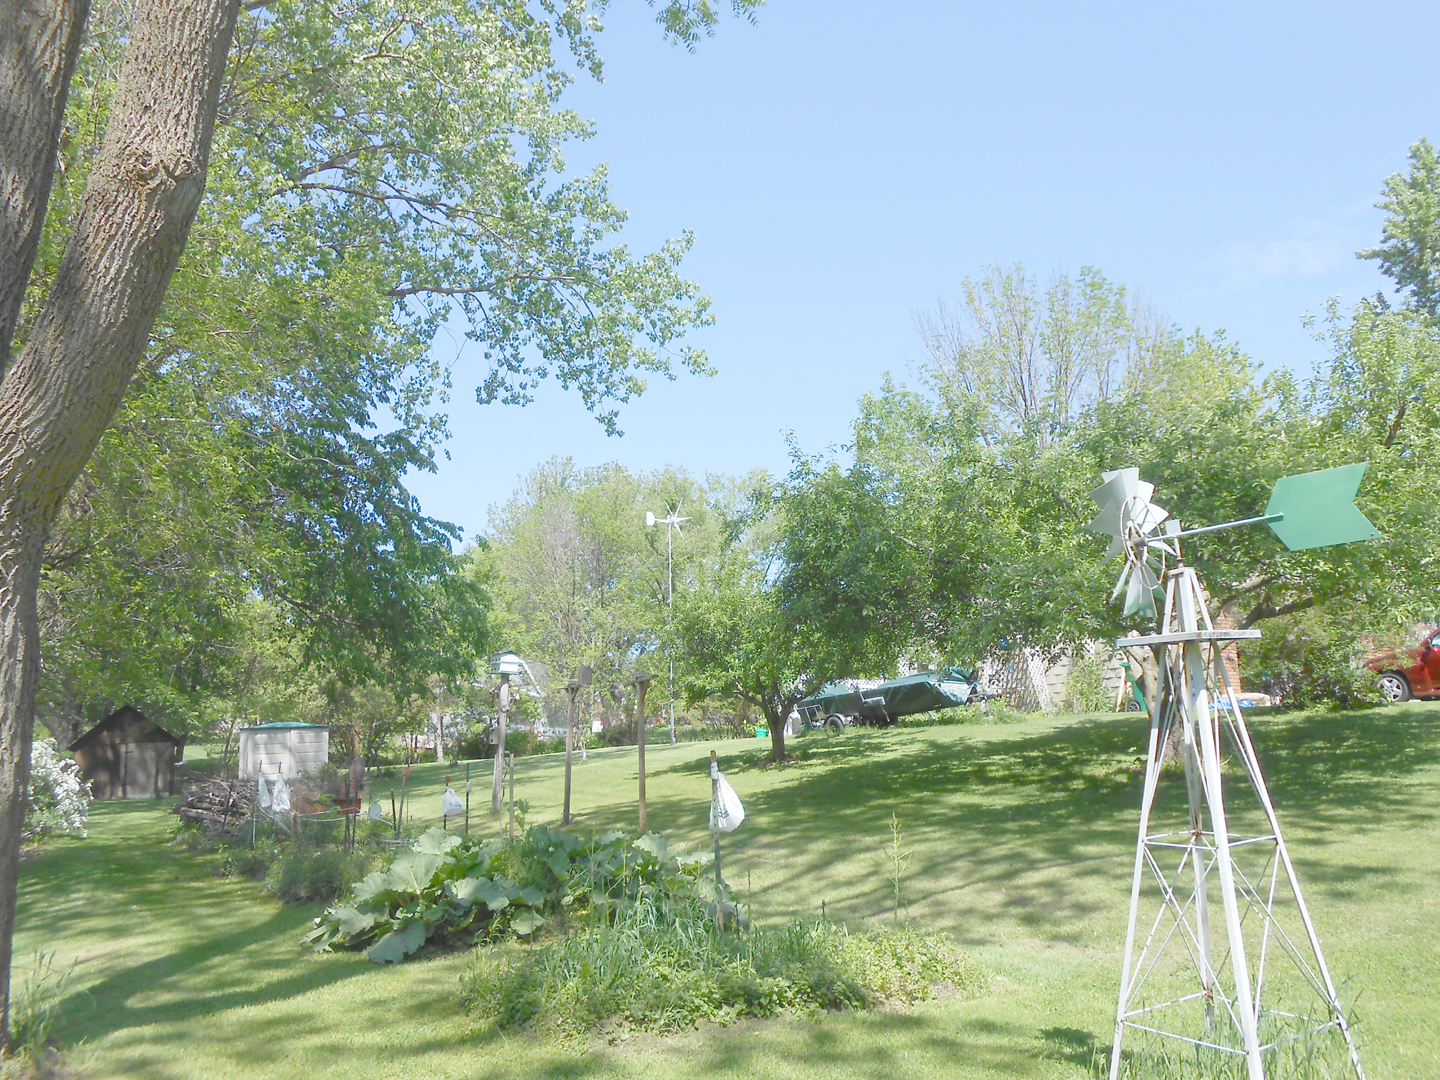 Wind Turbine Installation Instructions Load Wiring Diagram Get Free Image About The Surrounding Trees And It Does Not Up To Full Speeds Is In Center Of This Photo Hard Spot One On Right